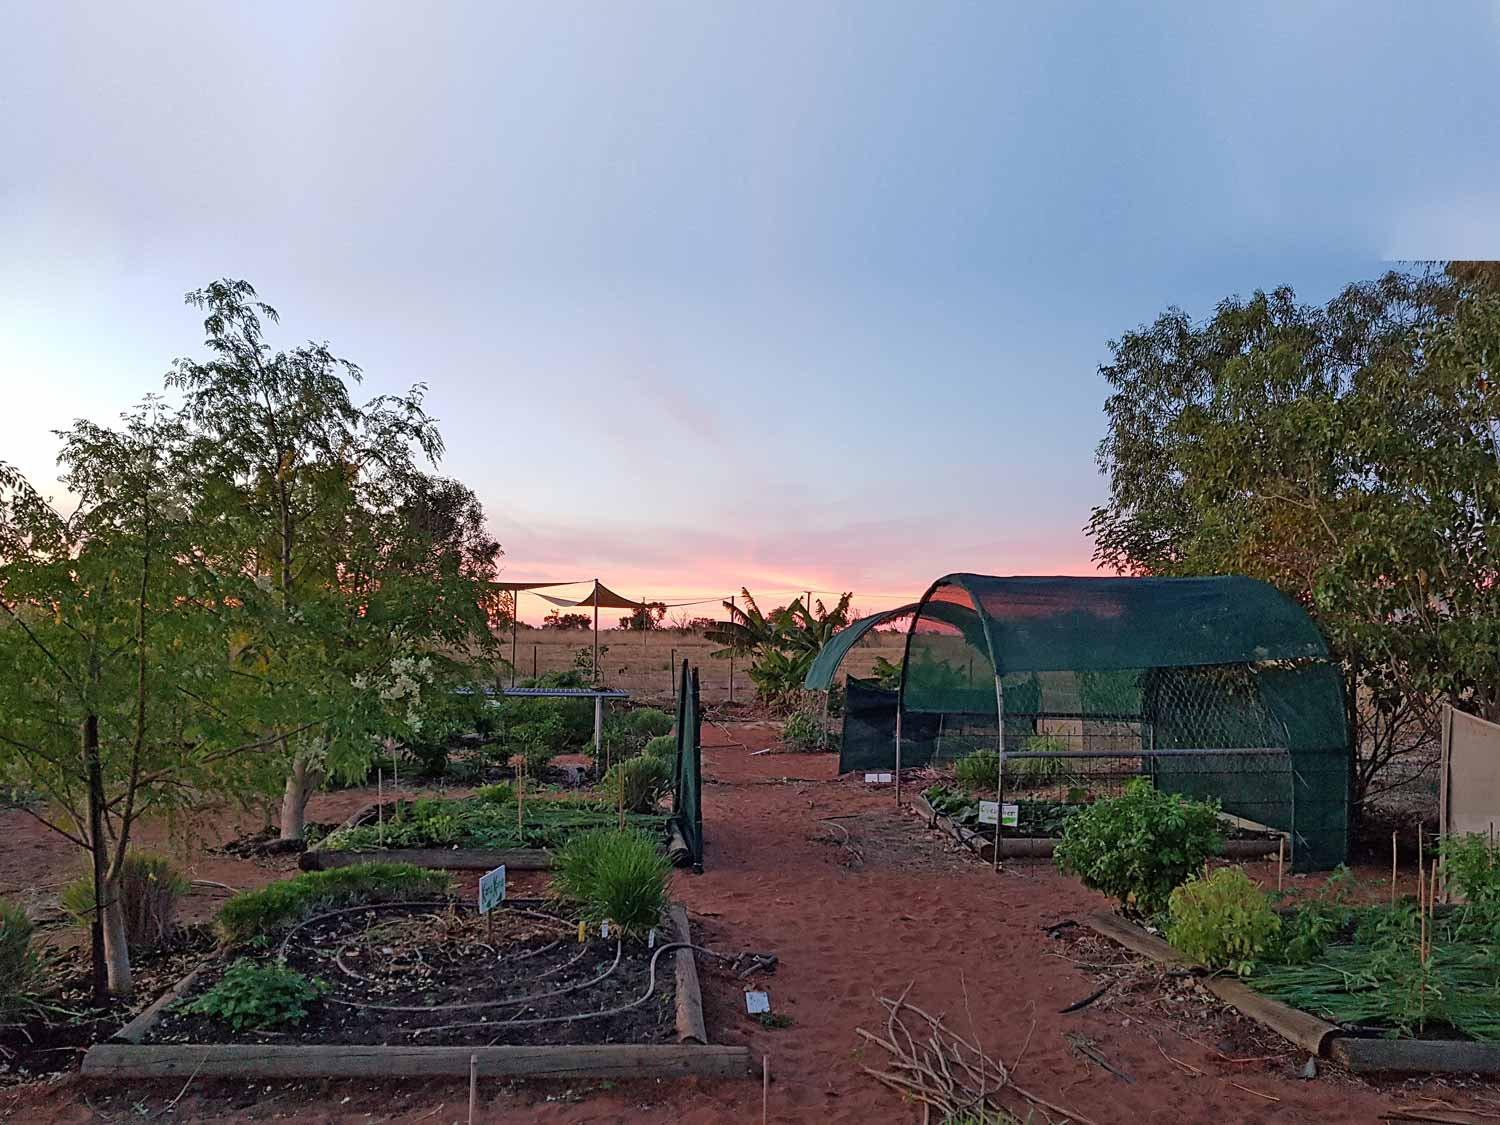 AR2018_General_Garden-at-sunset-(1).jpg